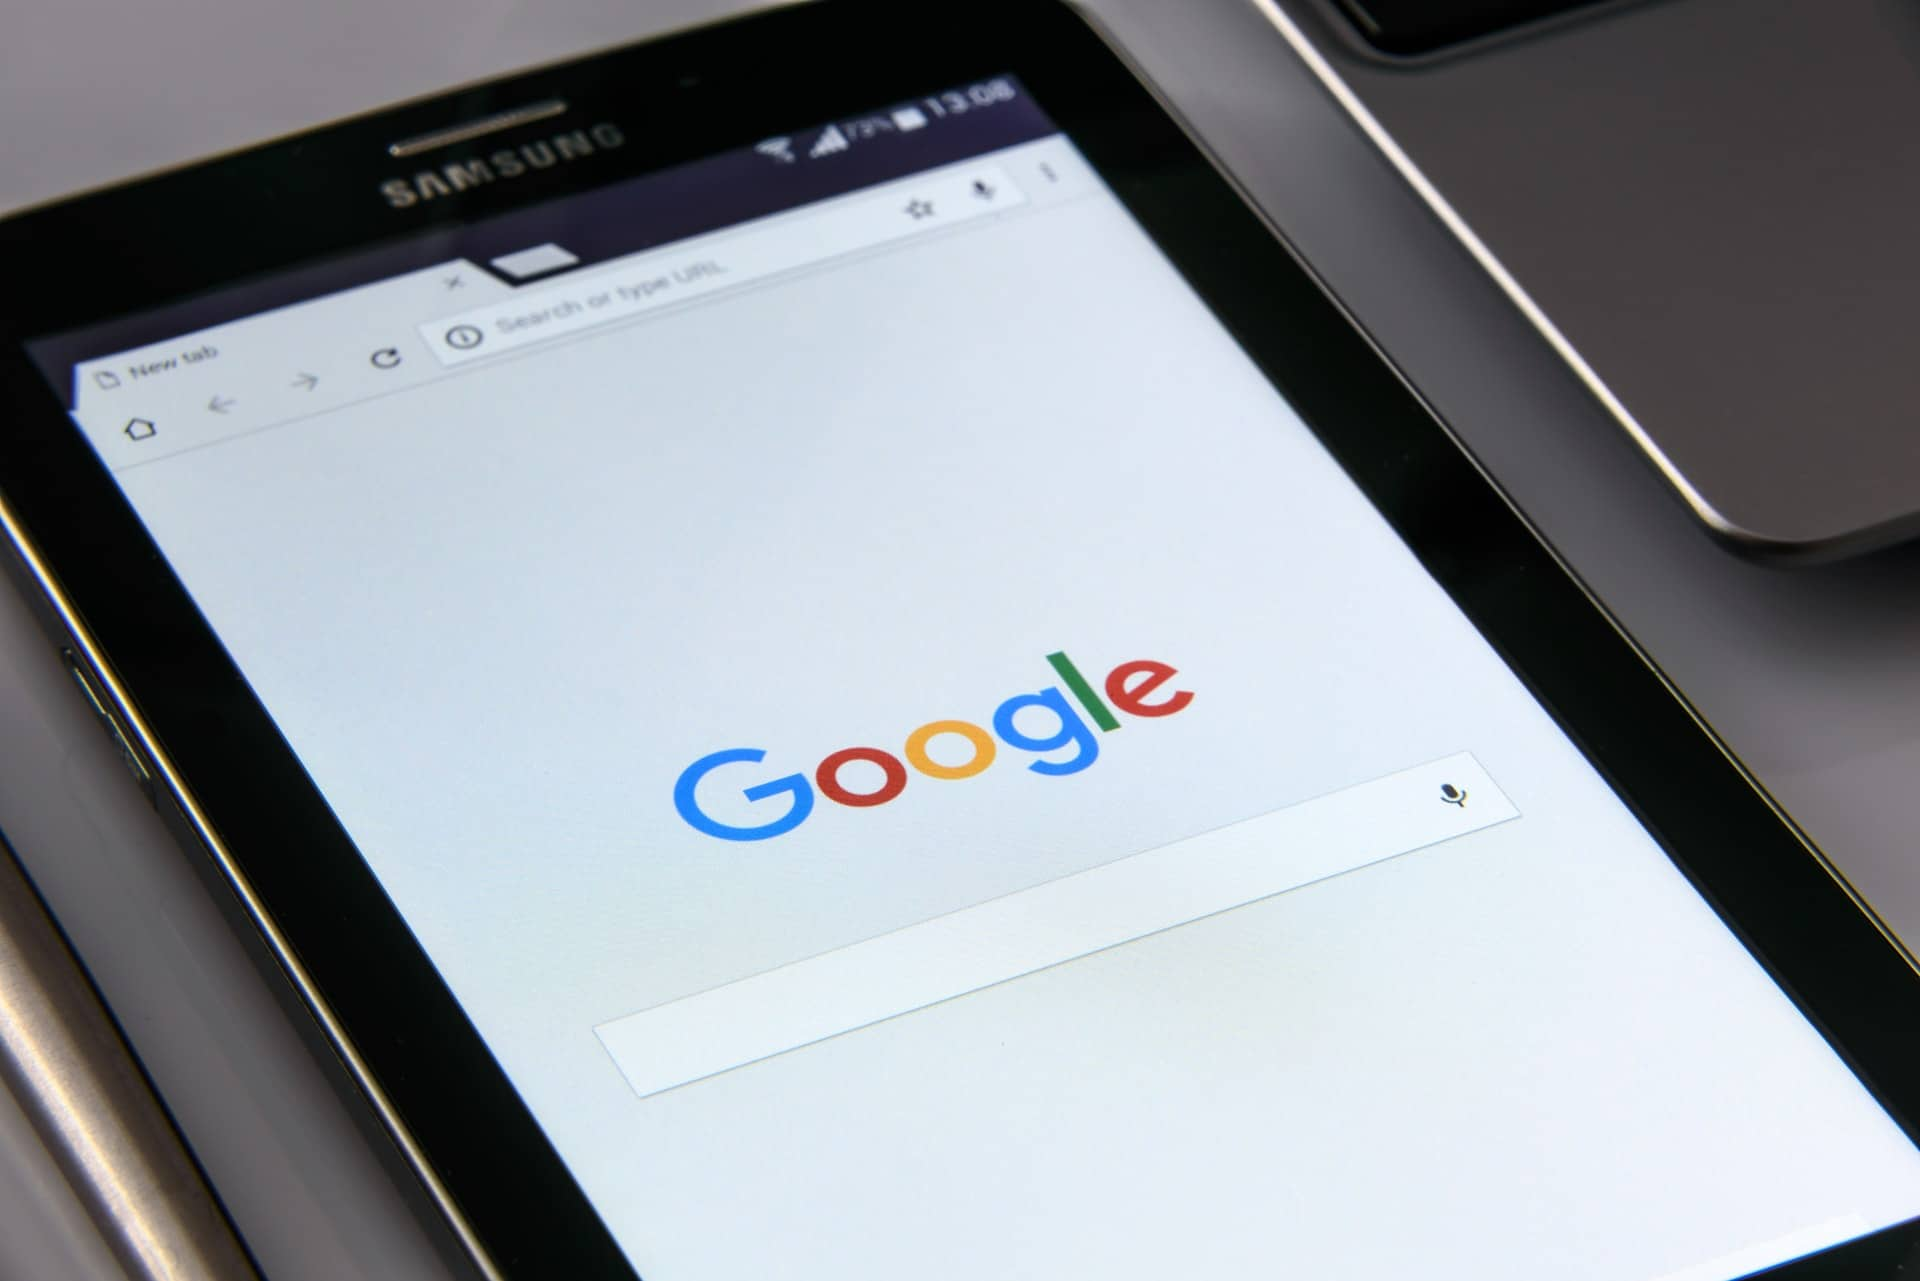 Google Announces Major Changes to AdWords in Platform Shake-up